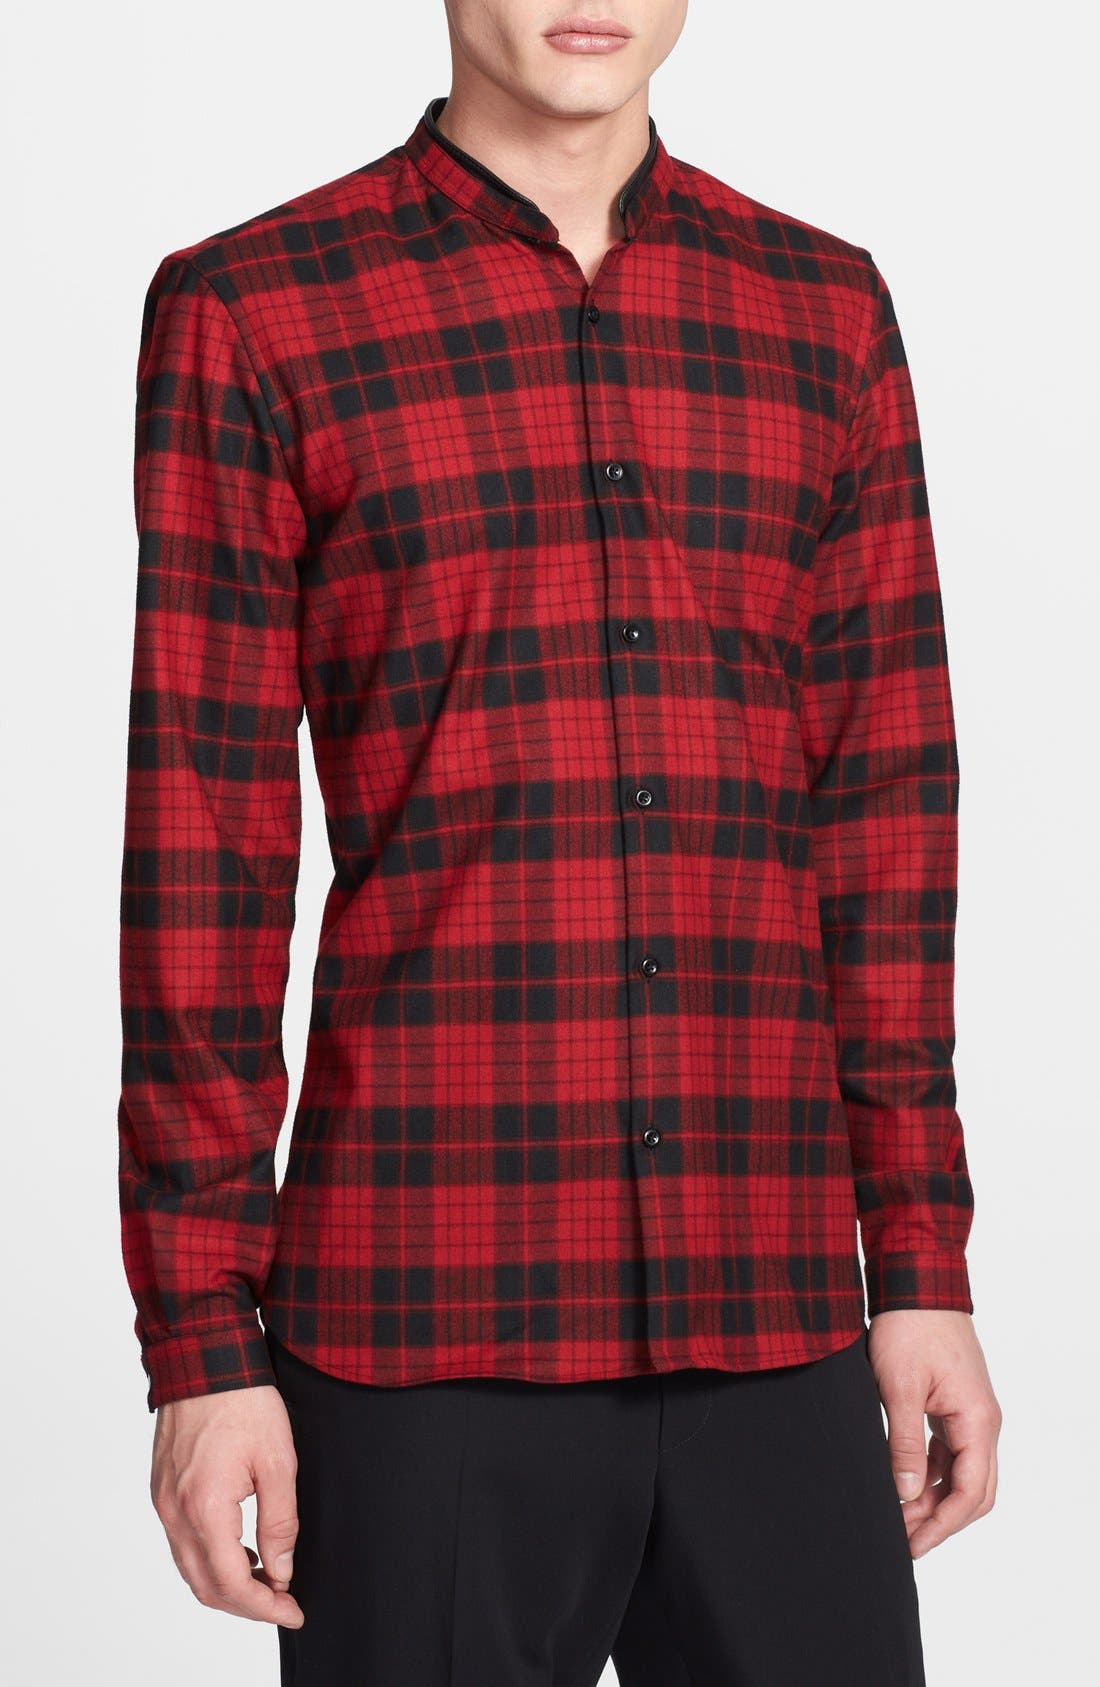 Alternate Image 1 Selected - The Kooples Band Collar Plaid Flannel Shirt